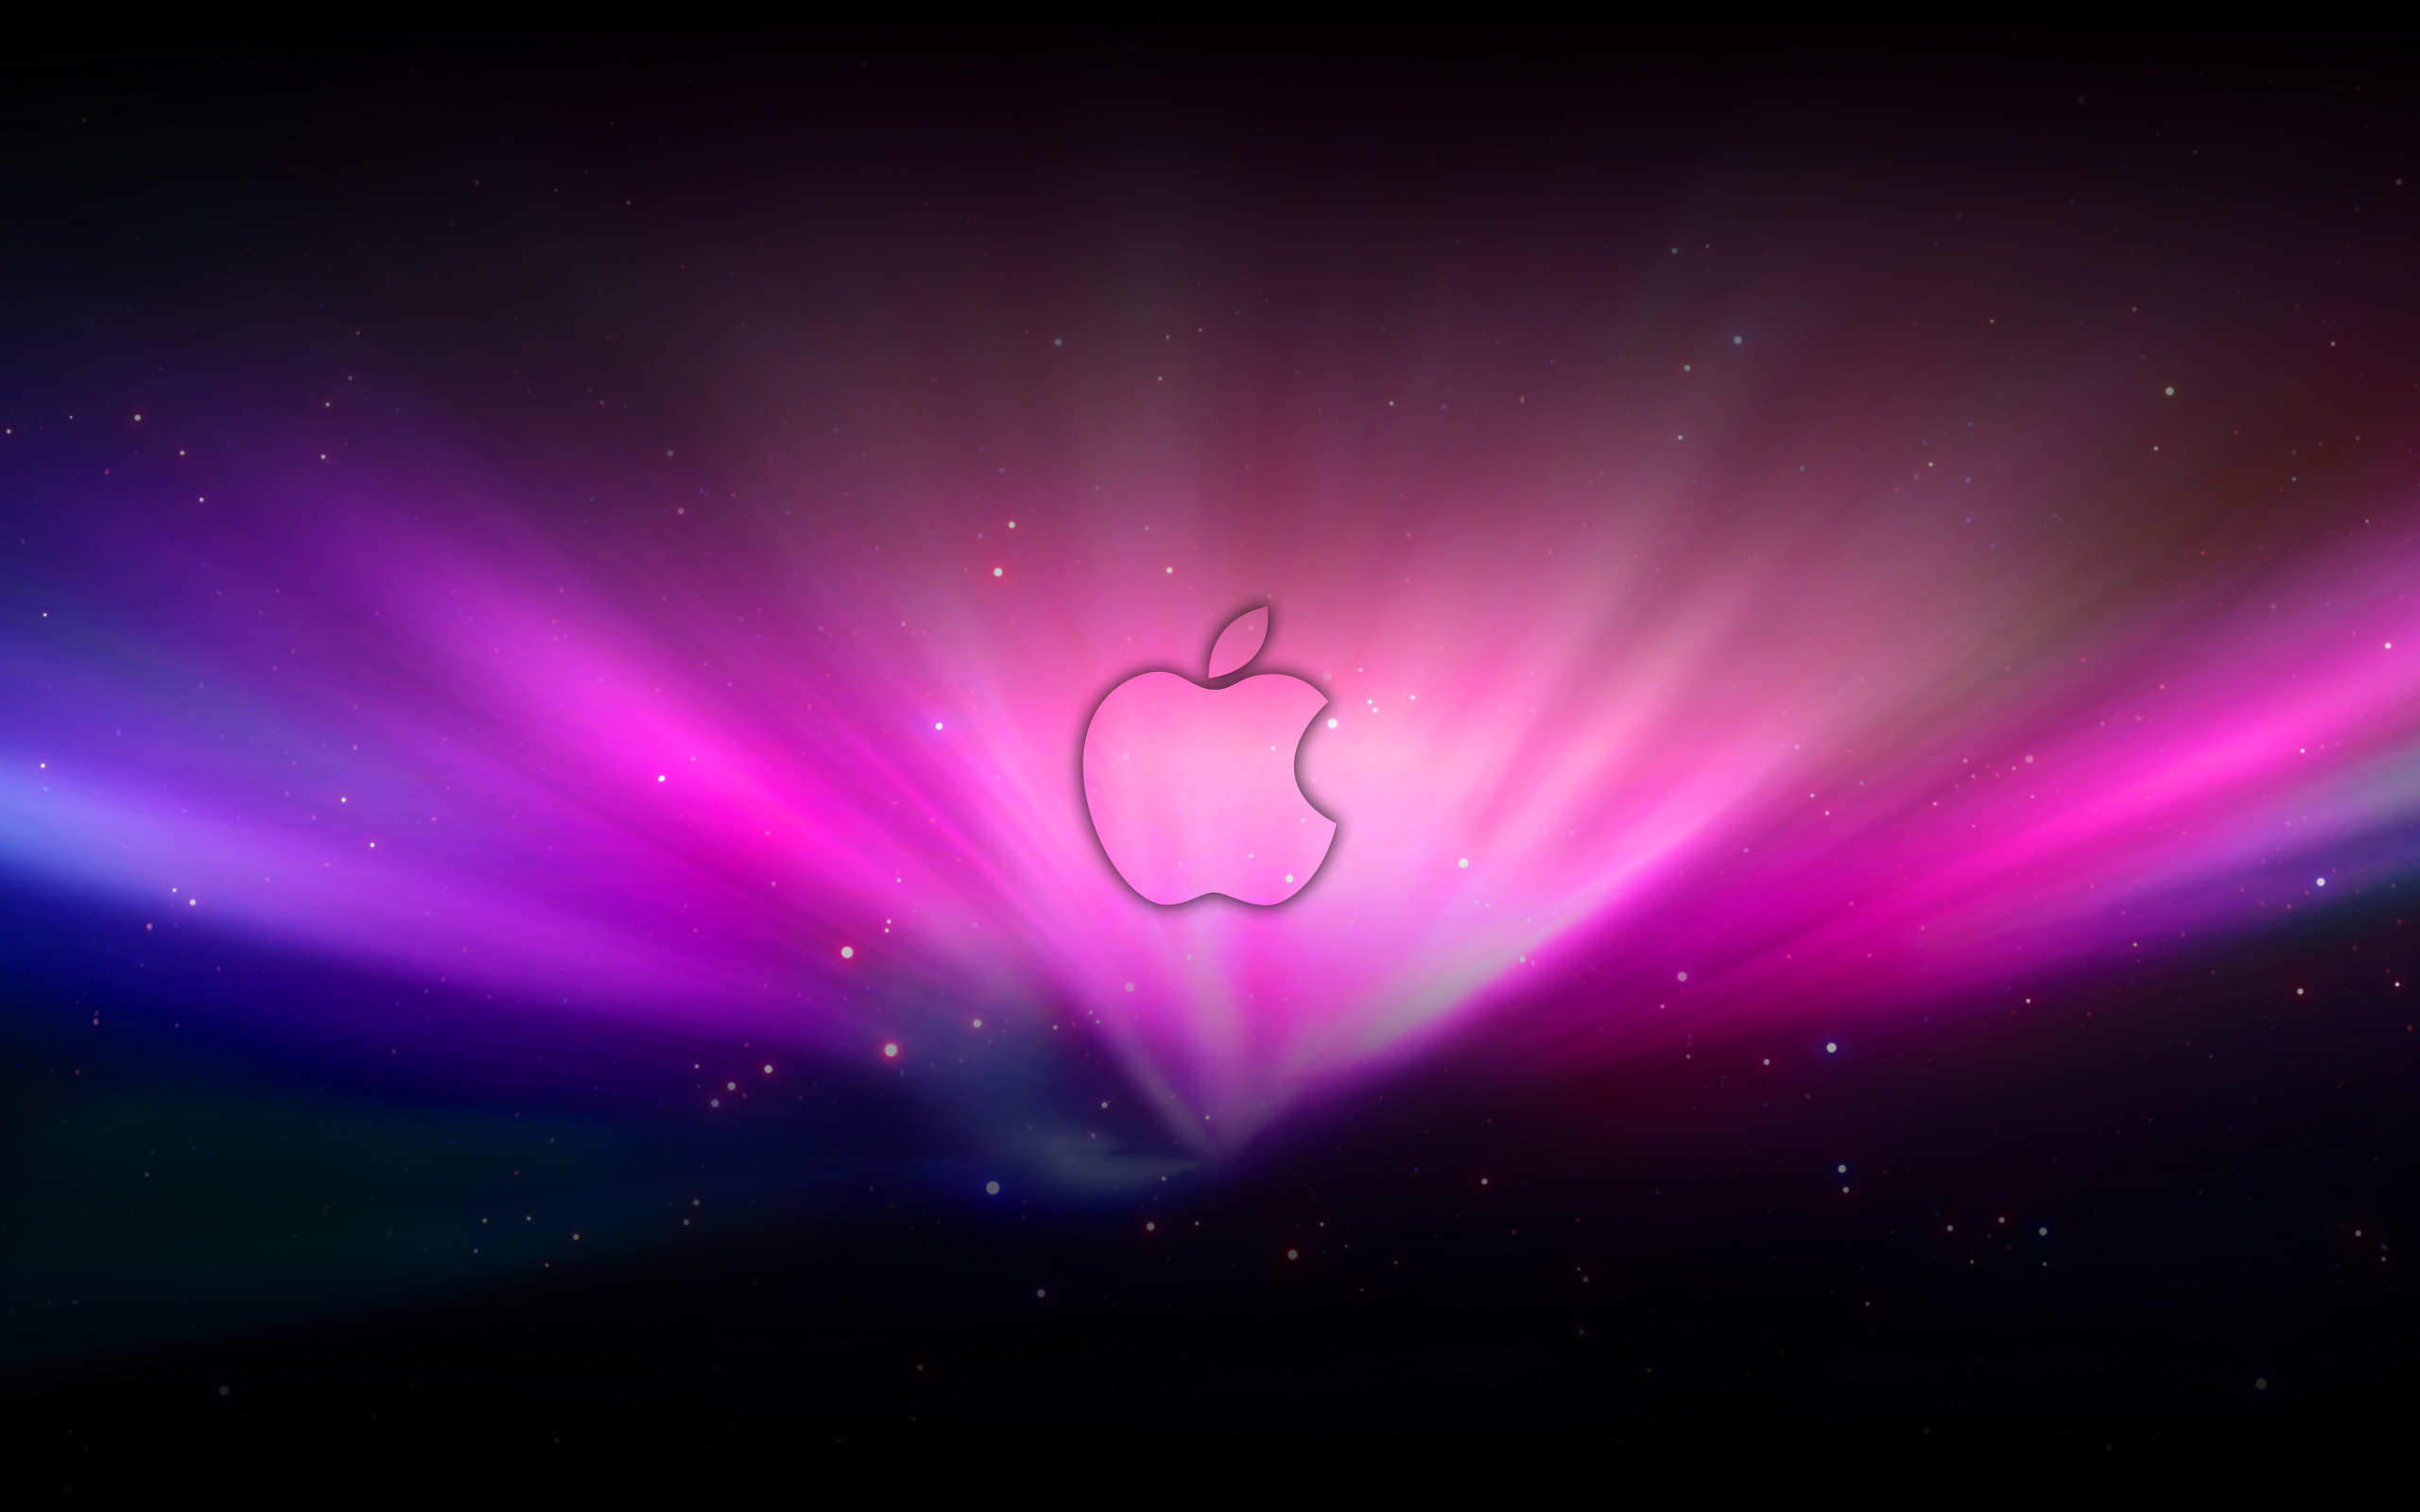 Mac Os X for Mac - Free downloads and reviews - CNET ...